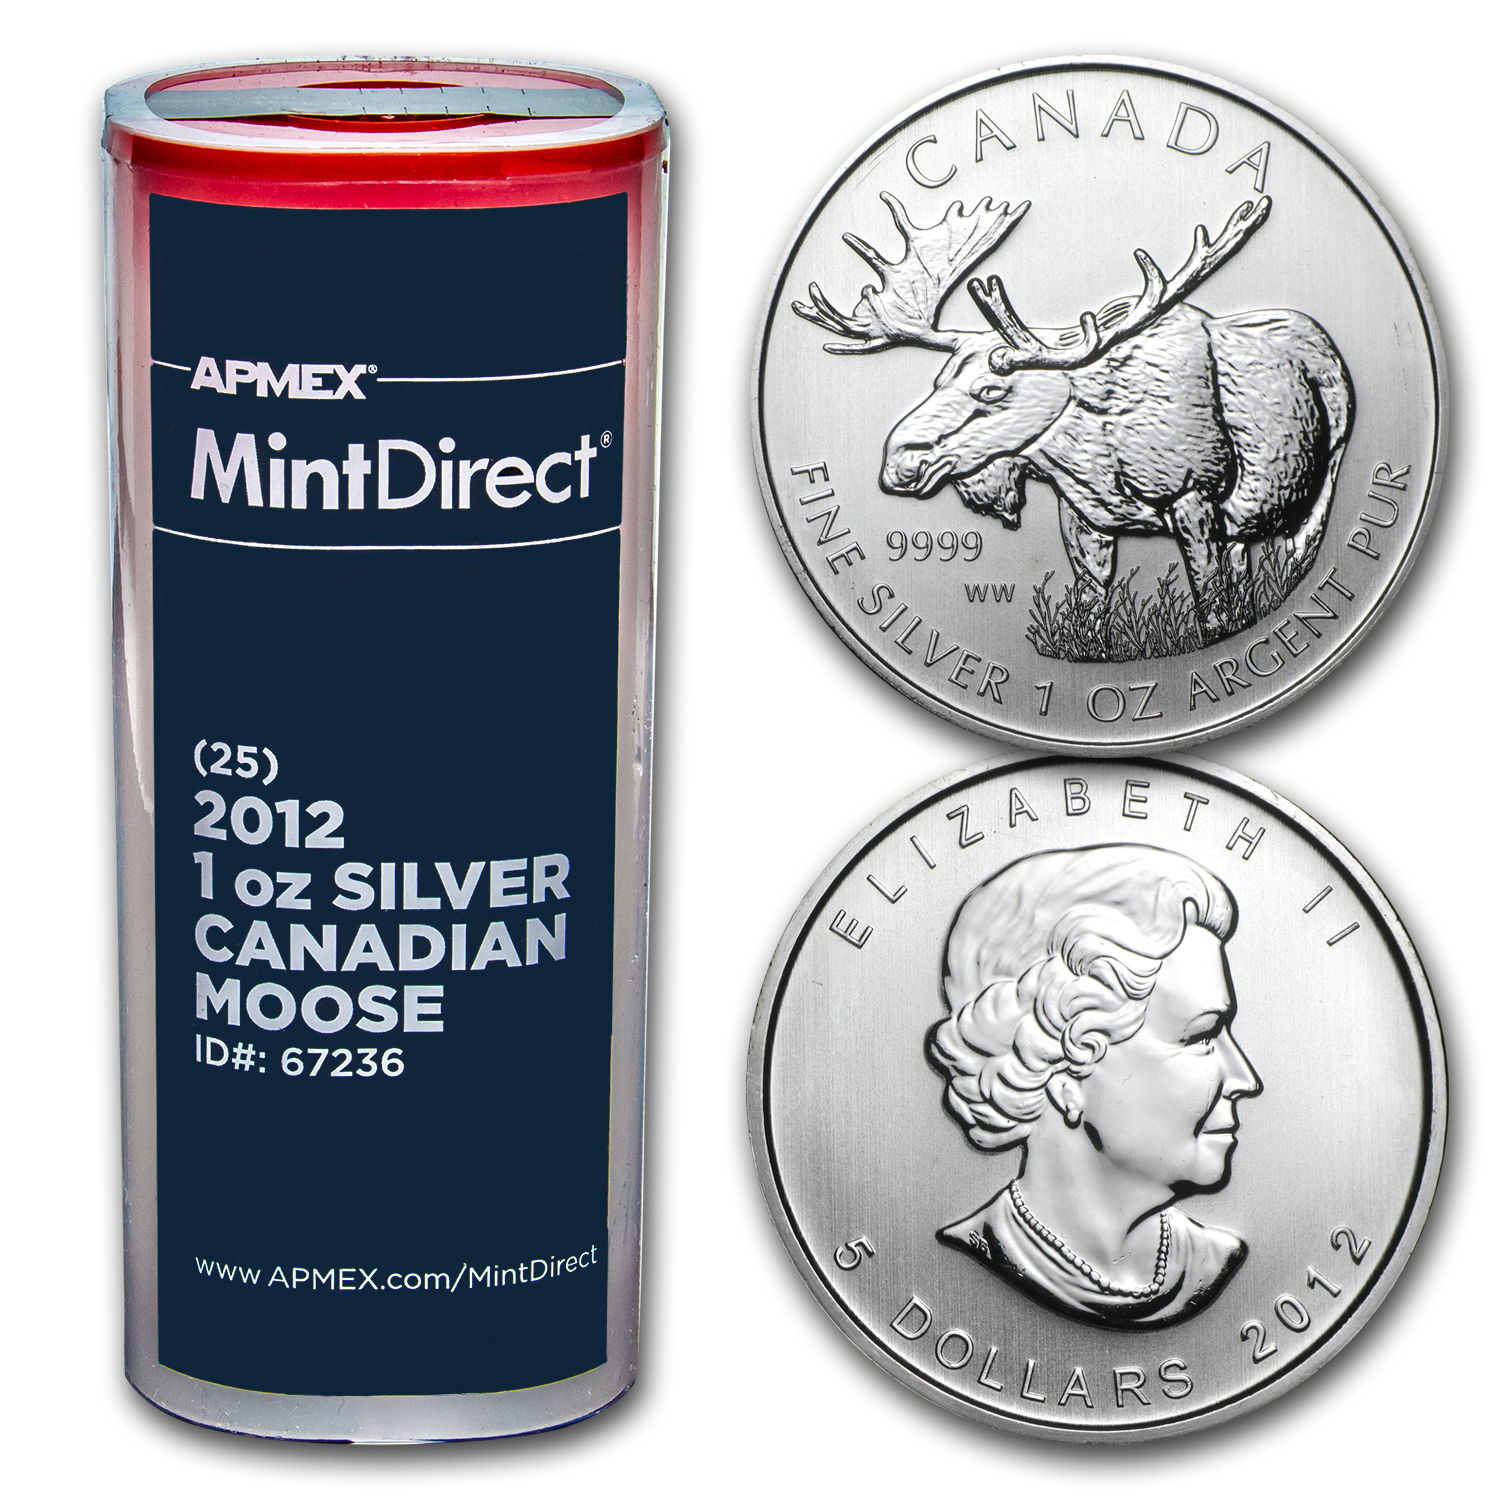 2012 1 oz Silver Canadian Moose 25-Coin MintDirect® Tube